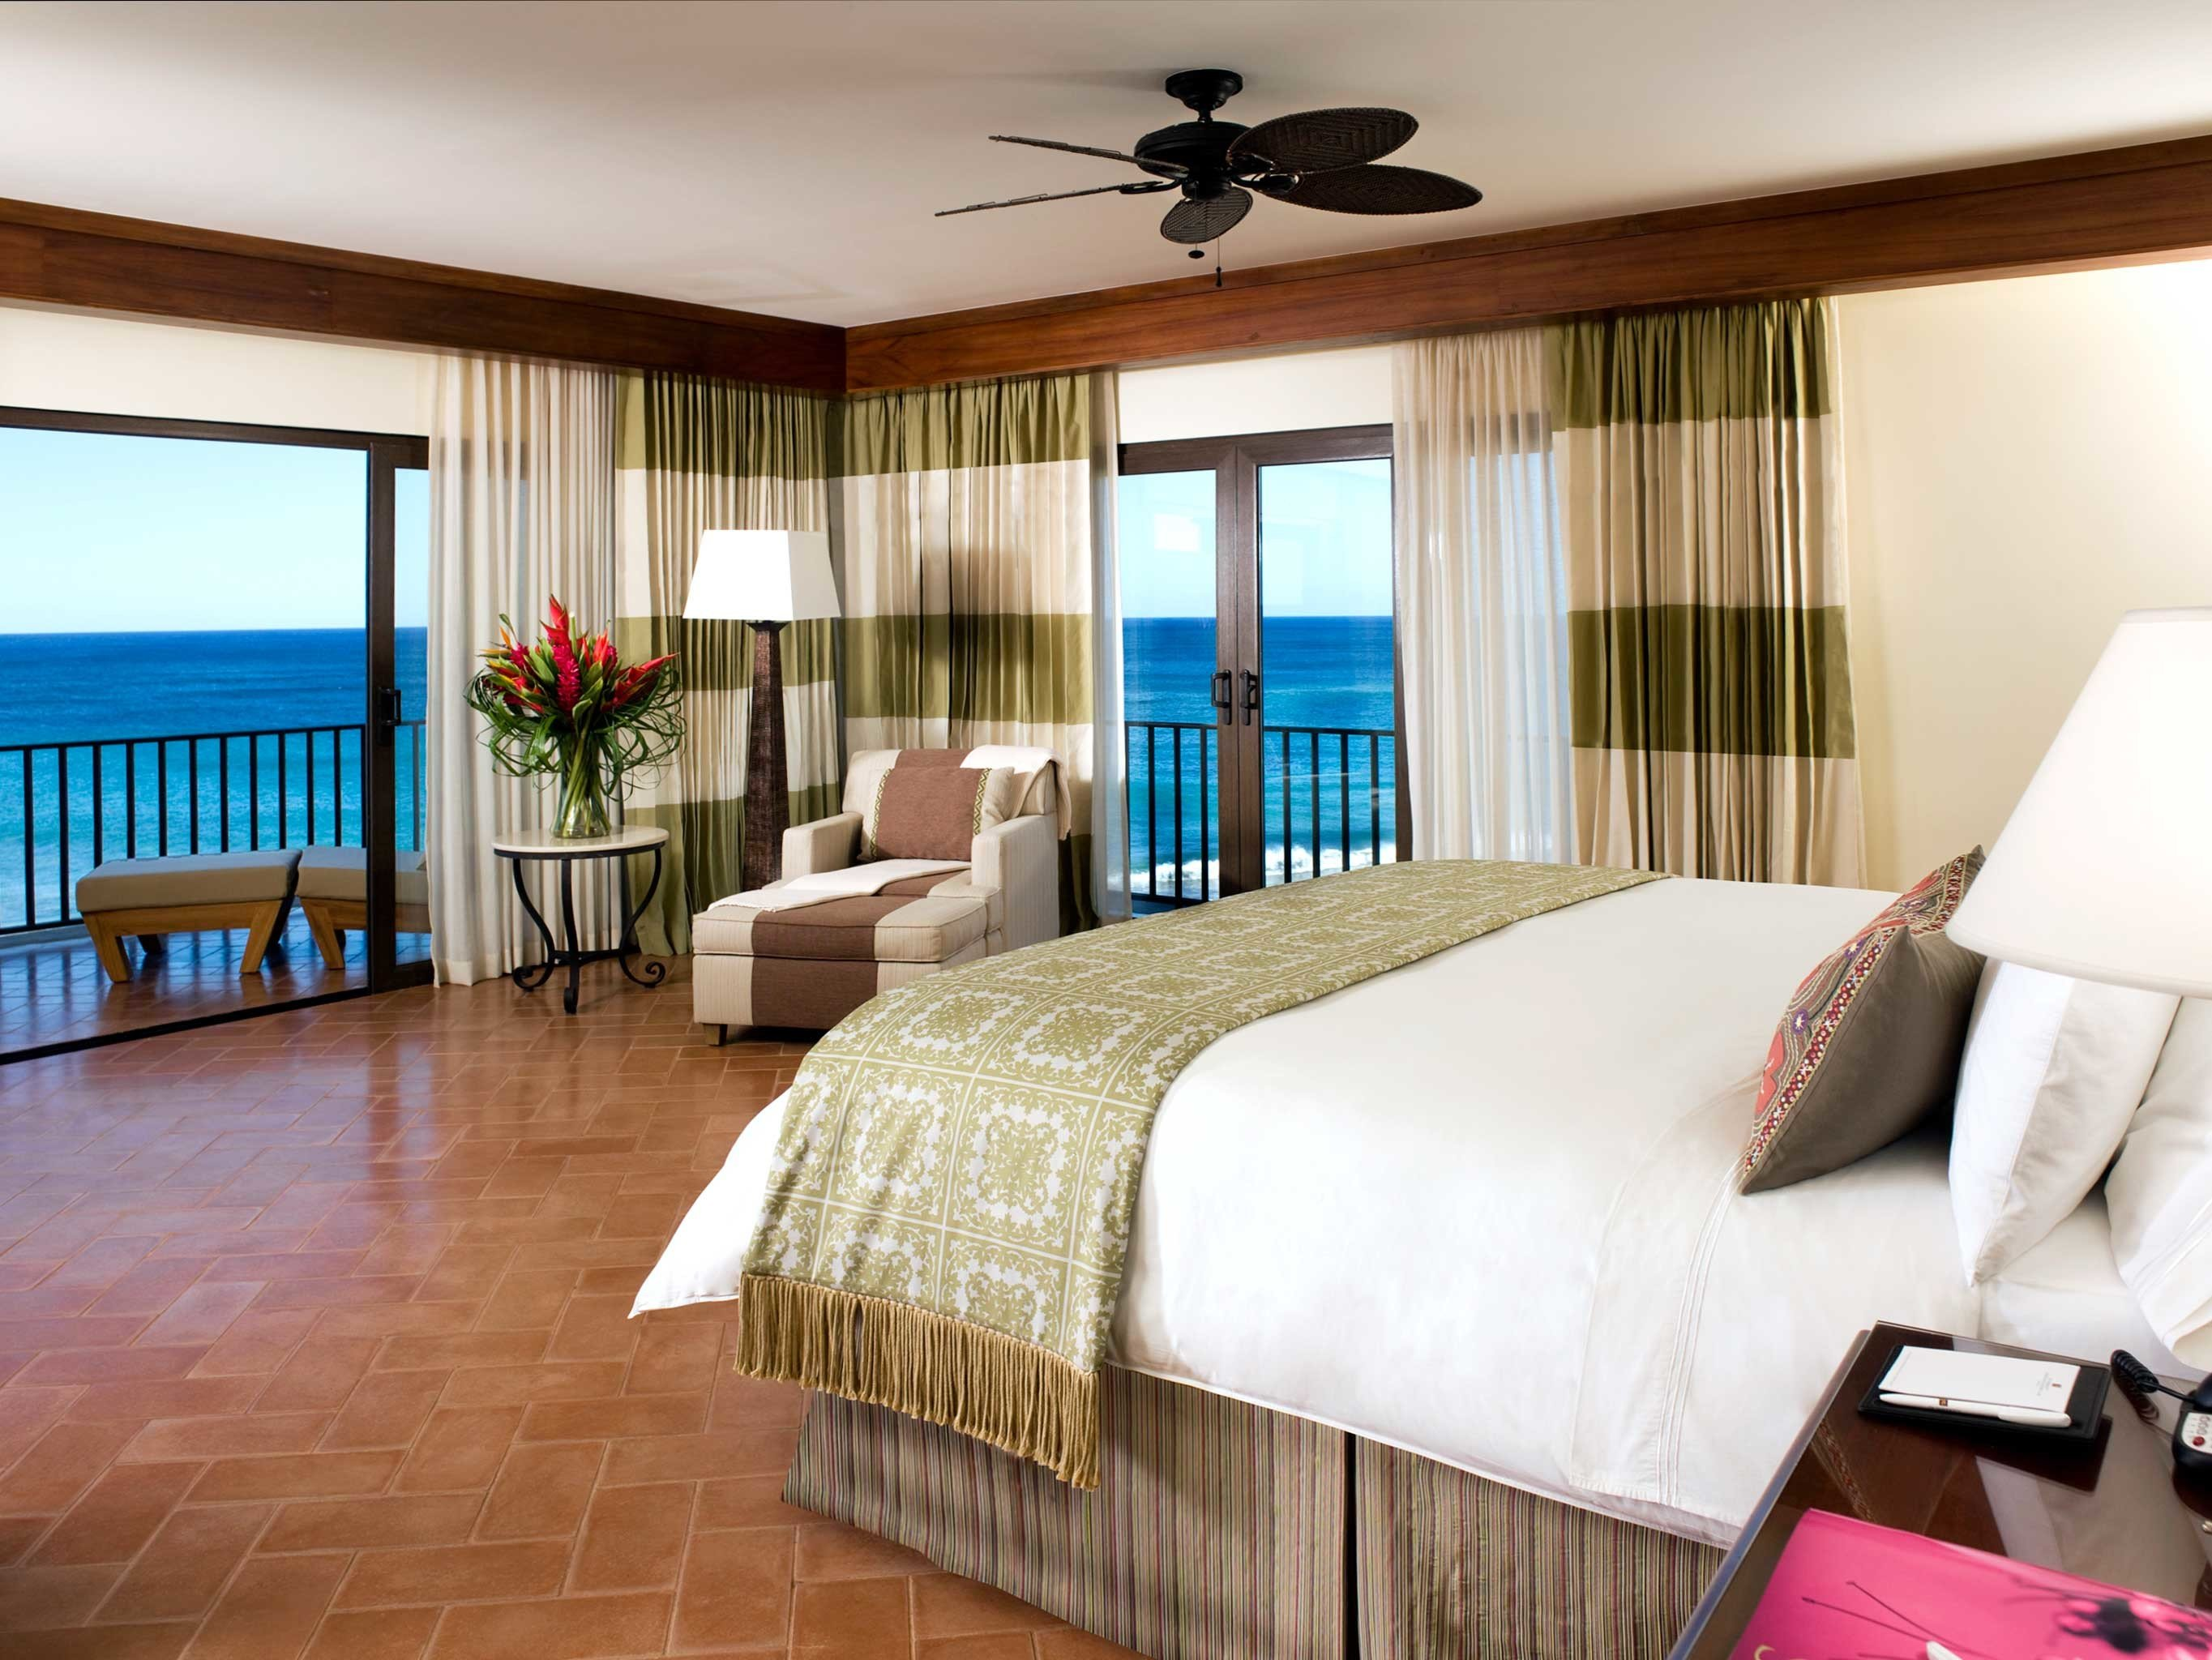 Balcony Beachfront Bedroom Lounge Luxury Scenic views Terrace Tropical property Suite home condominium living room cottage bed sheet